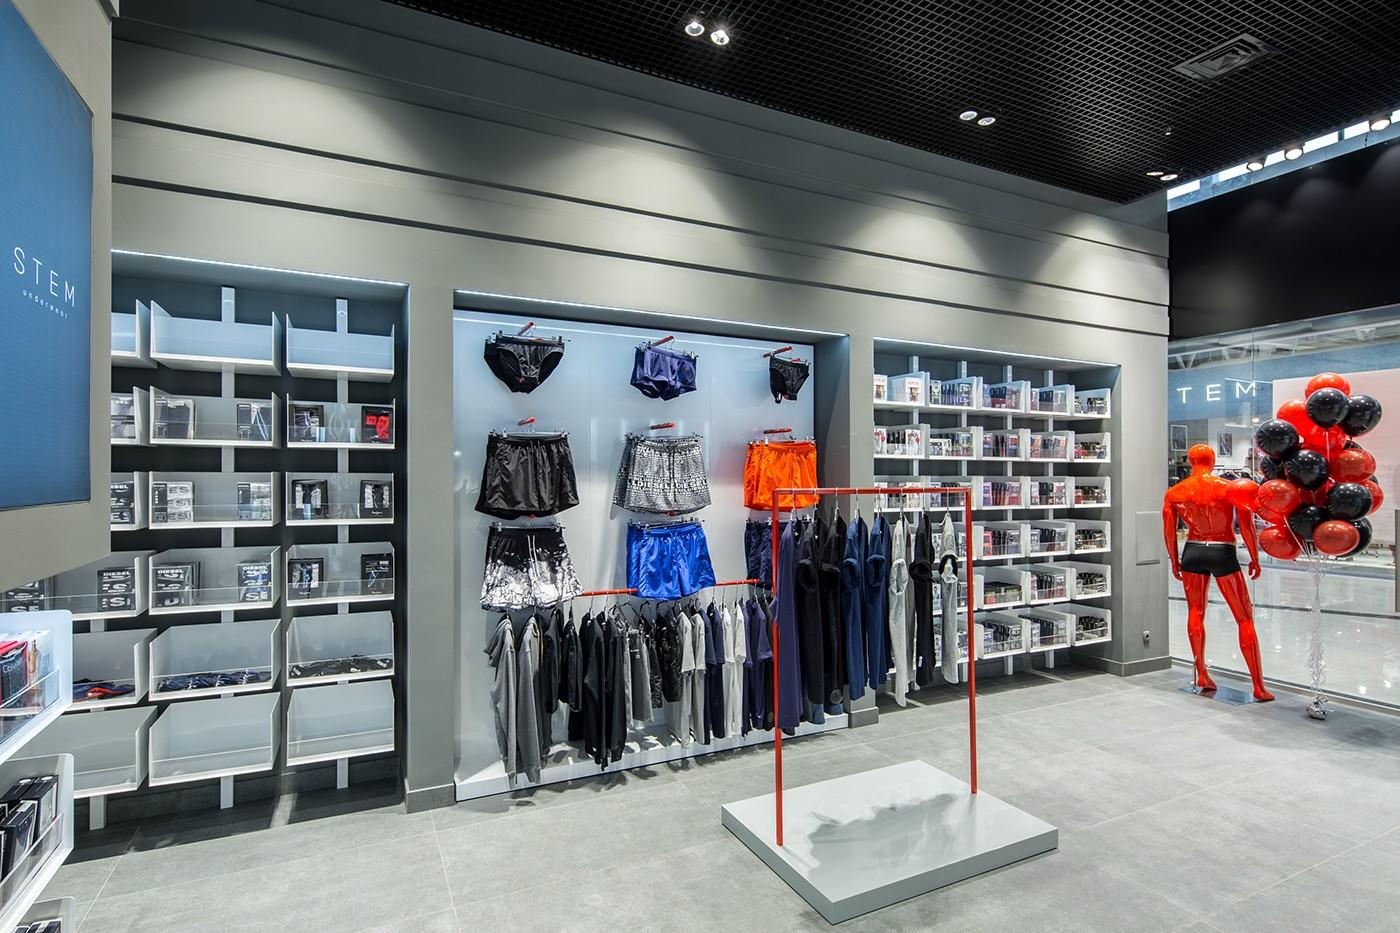 showroom garments stand clothing shelves commercial OUYEE